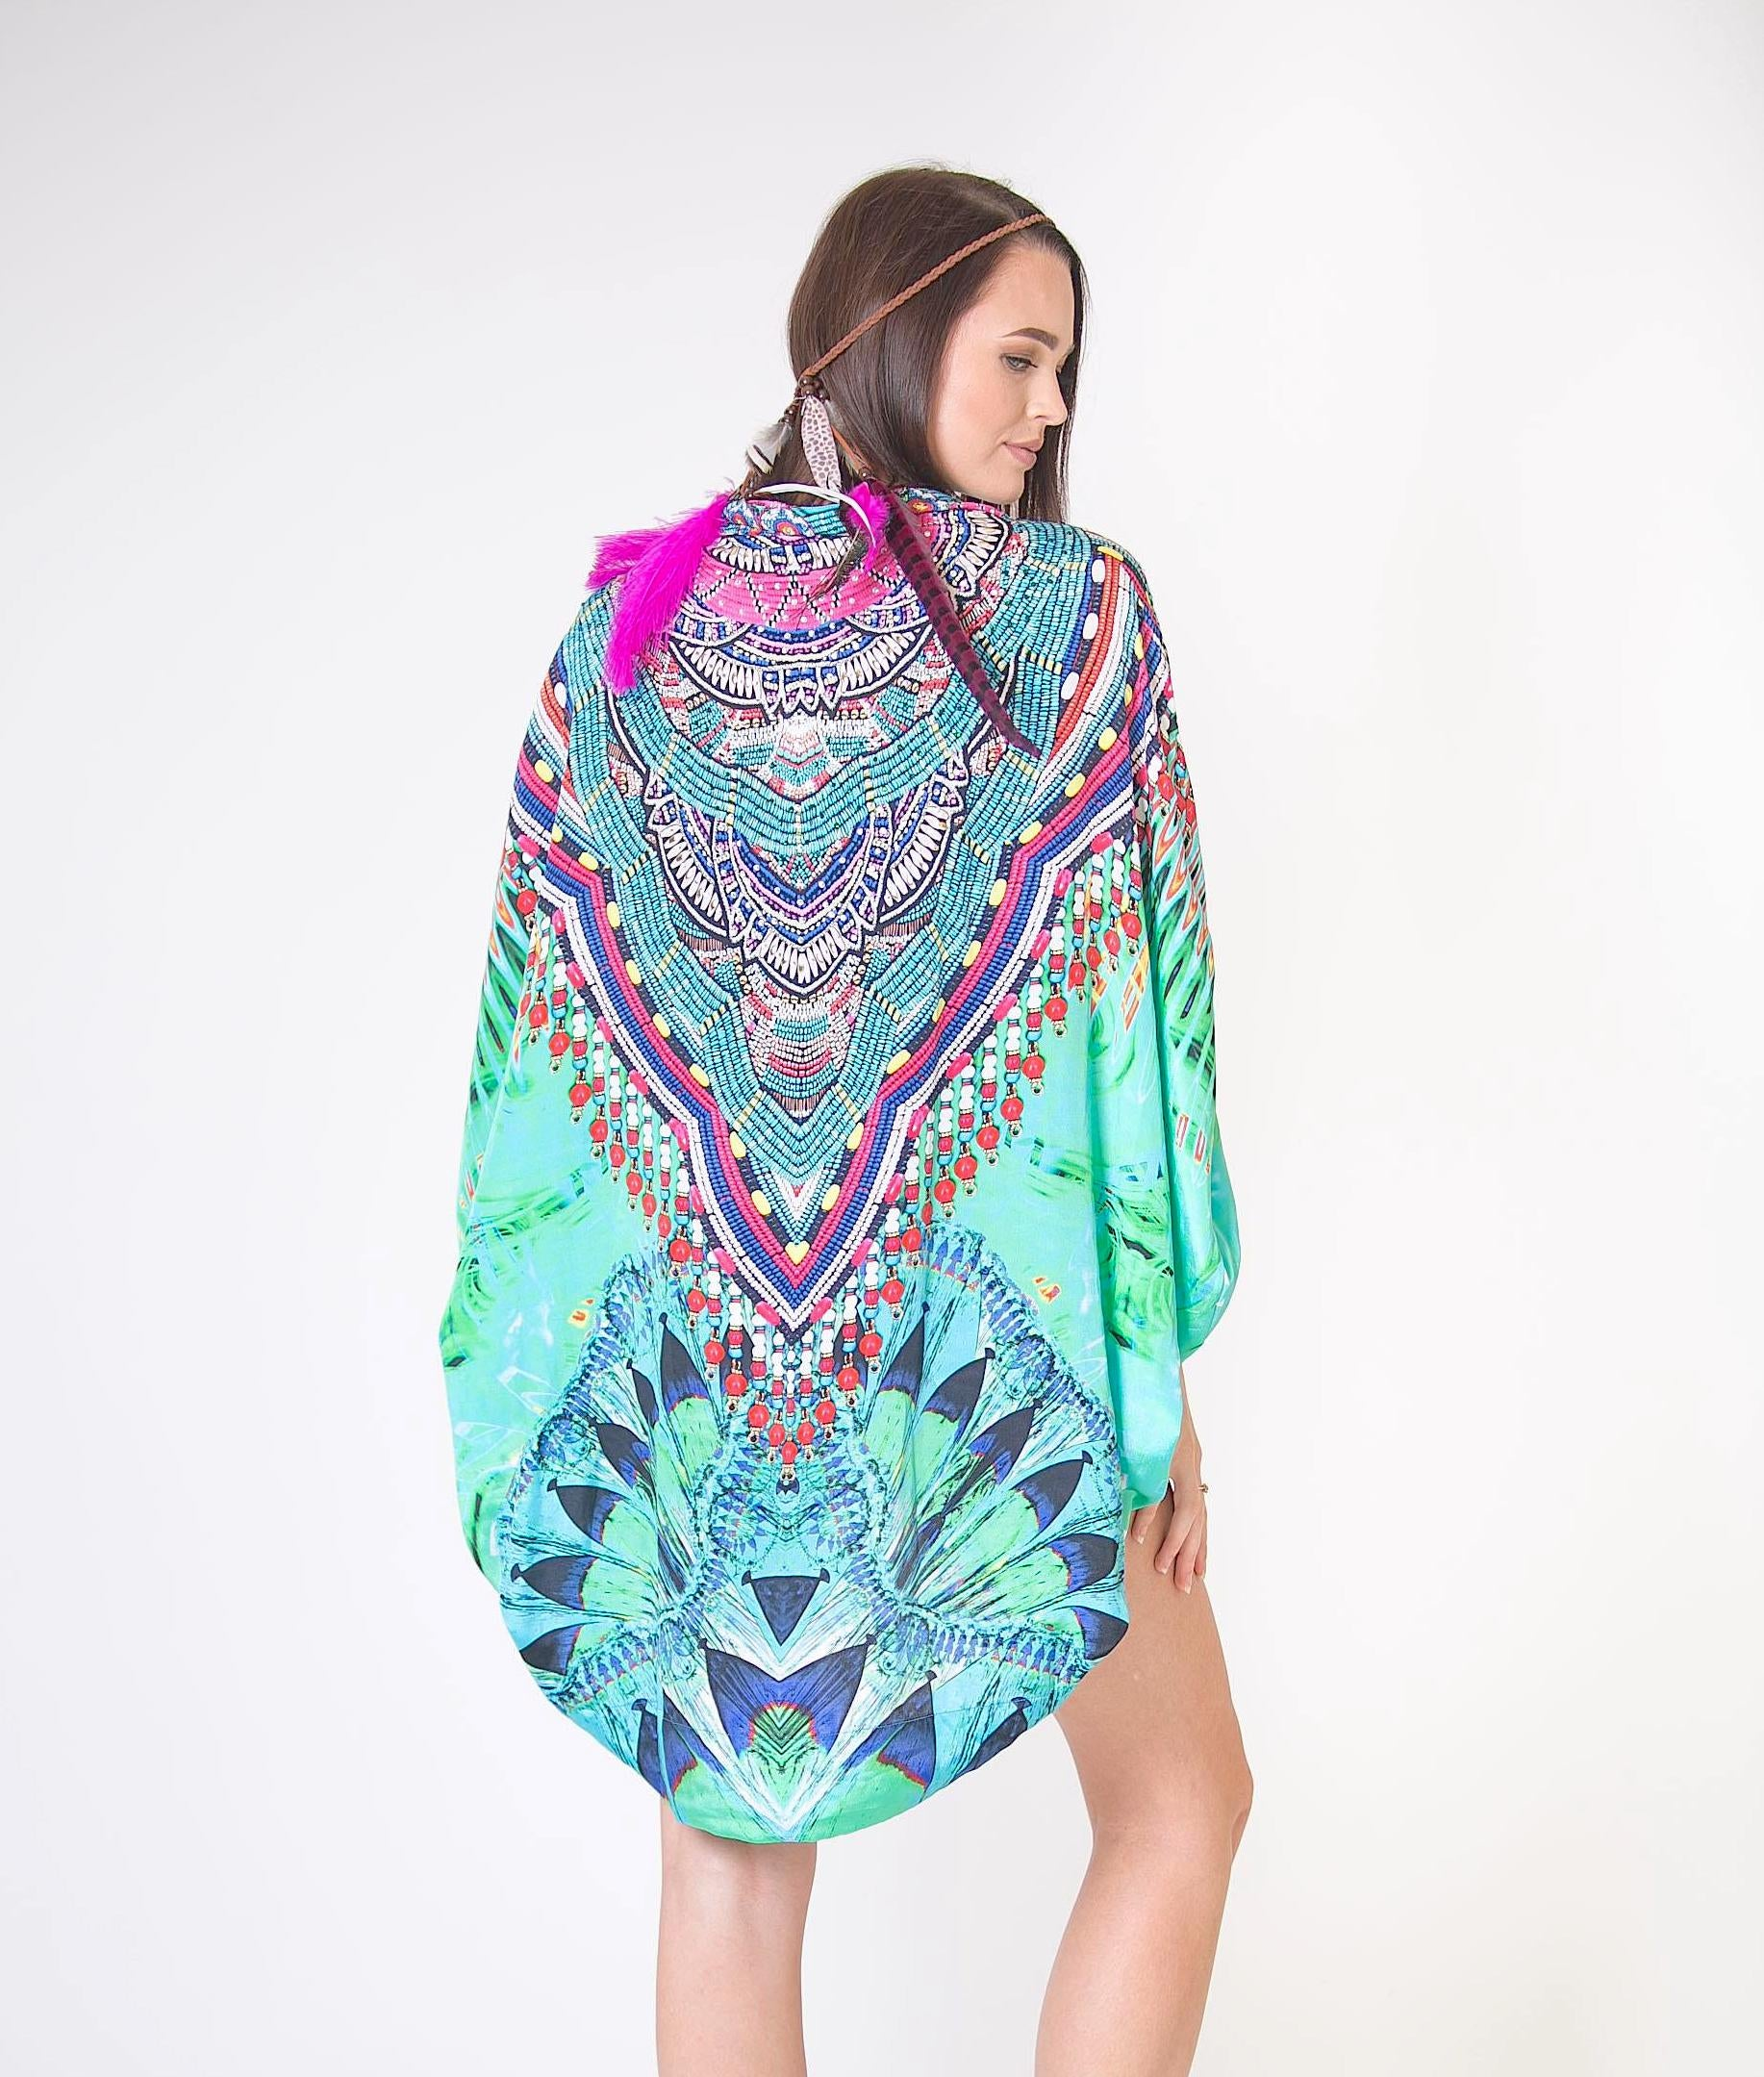 Silk Jeweled Printed Capes - www.LUXEISLE.com